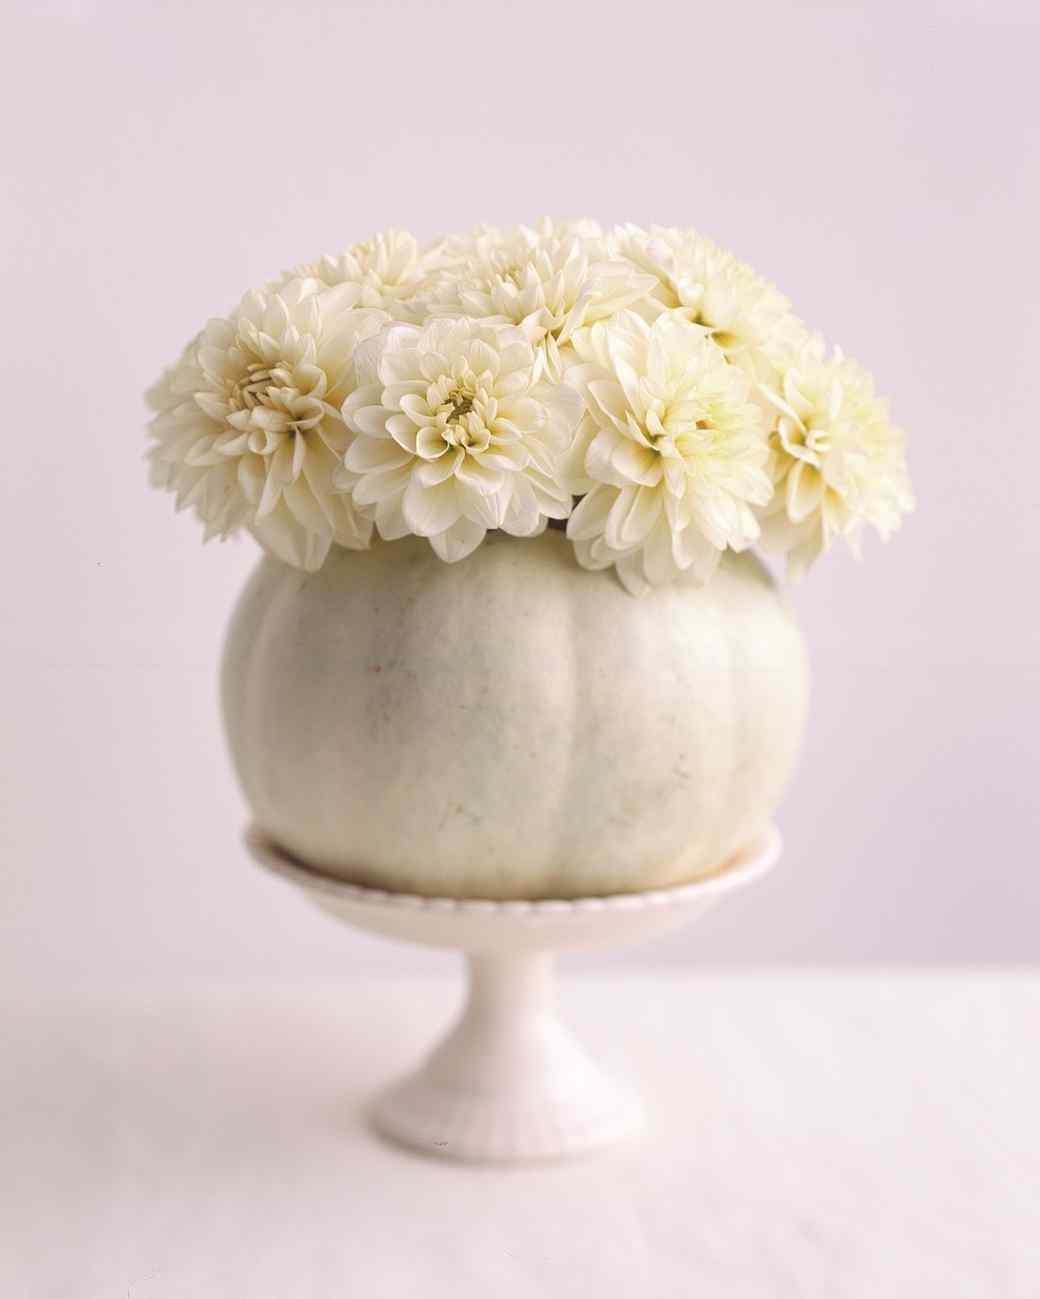 Fall Flower Arrangements | Martha Stewart